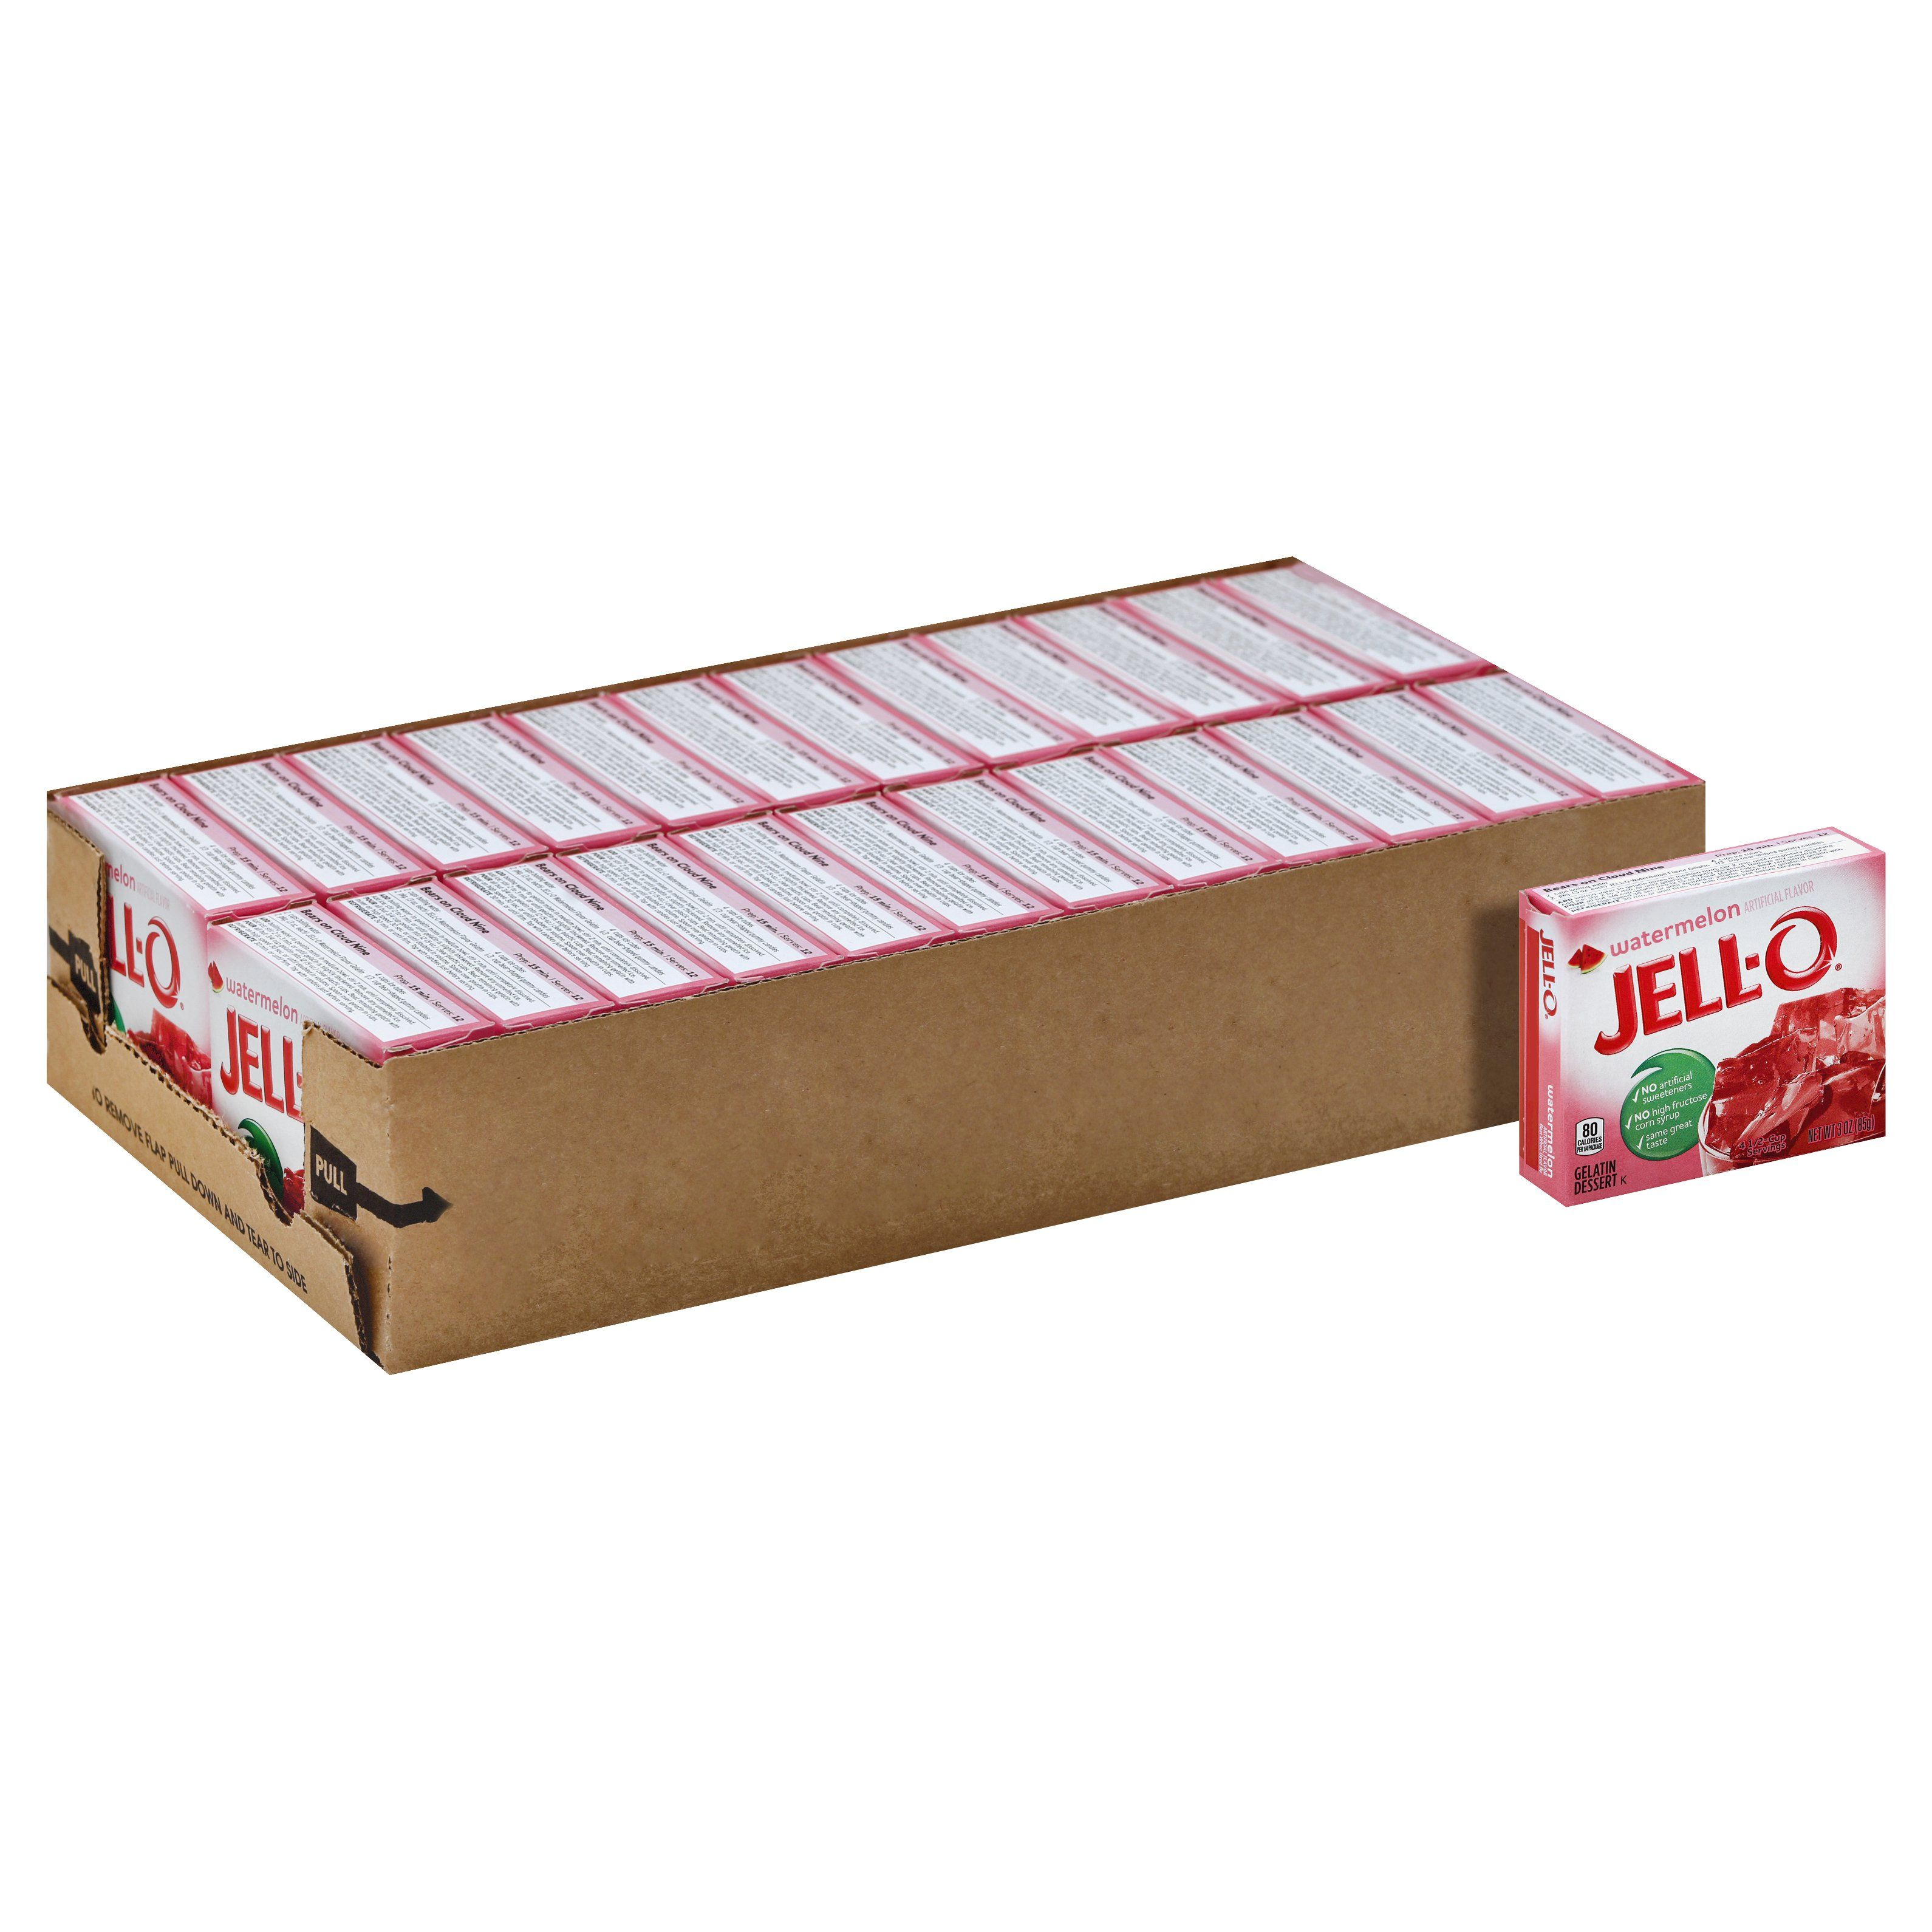 Jell-O Gelatin Mix Jell-O Watermelon 3 Oz-24 Count